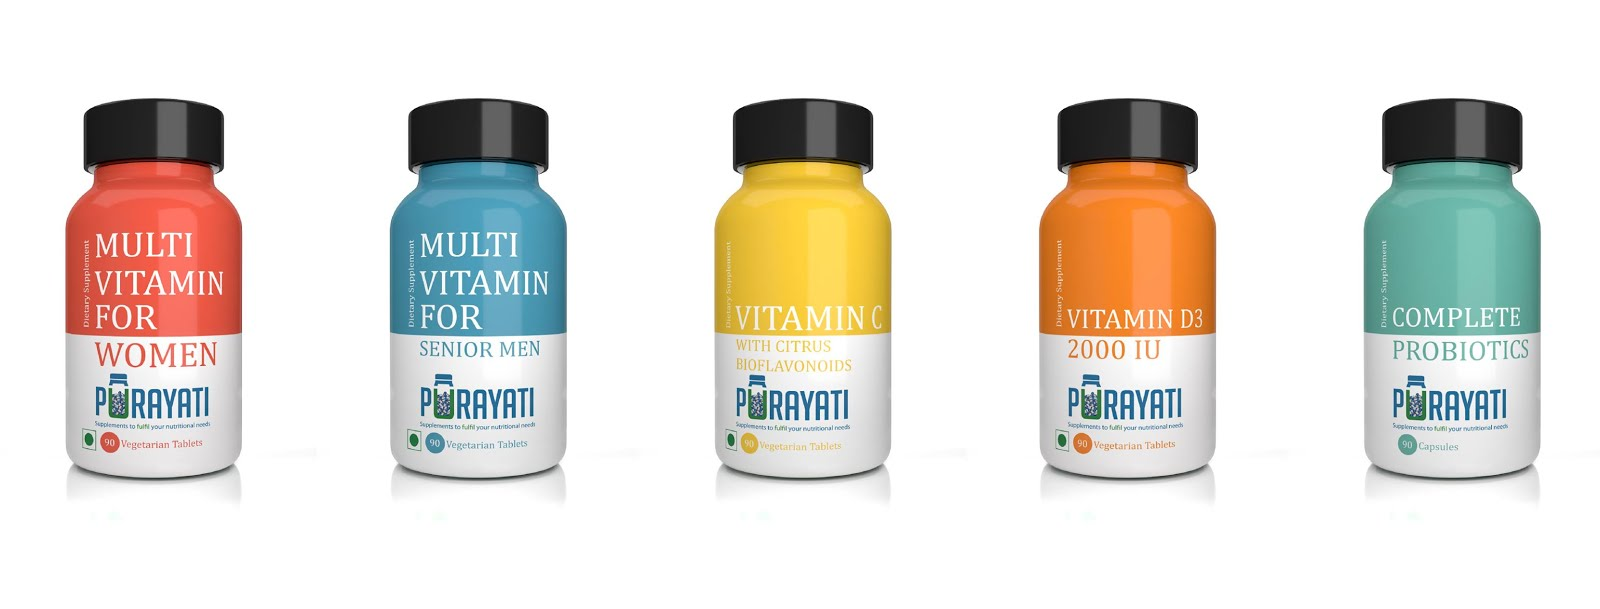 Puryati Explains If You Need Nutritional Supplements